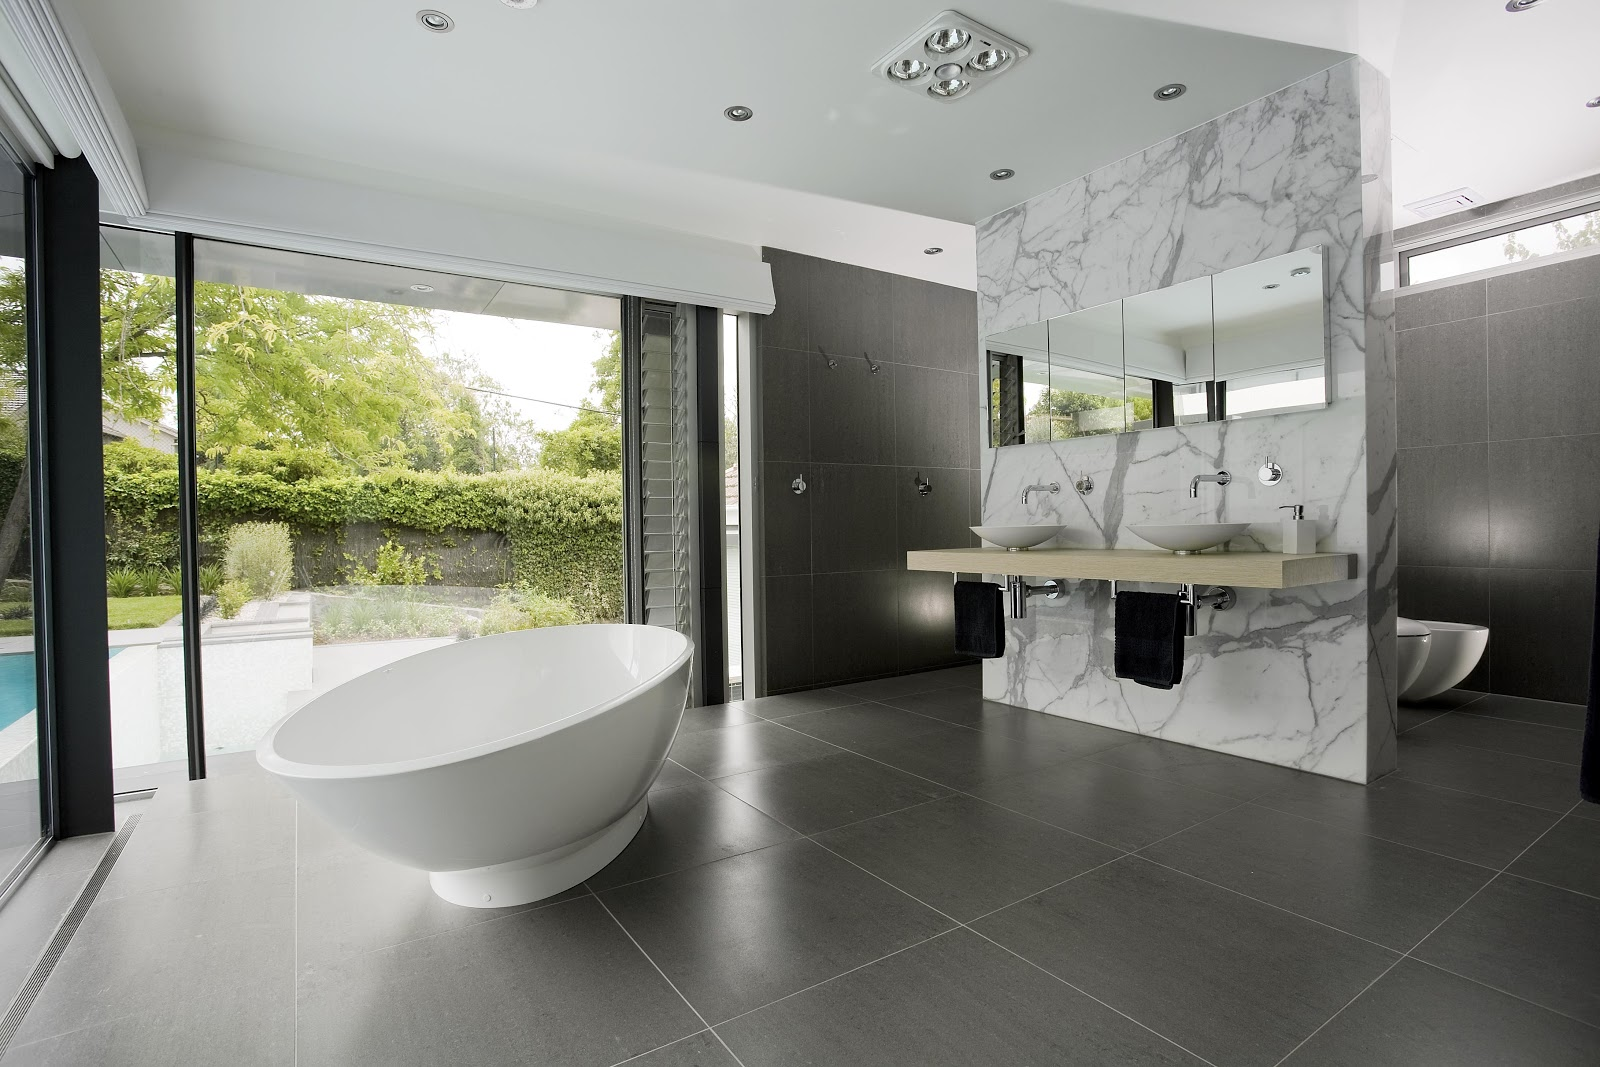 Minosa modern bathrooms the search for something different for Contemporary bathroom design ideas